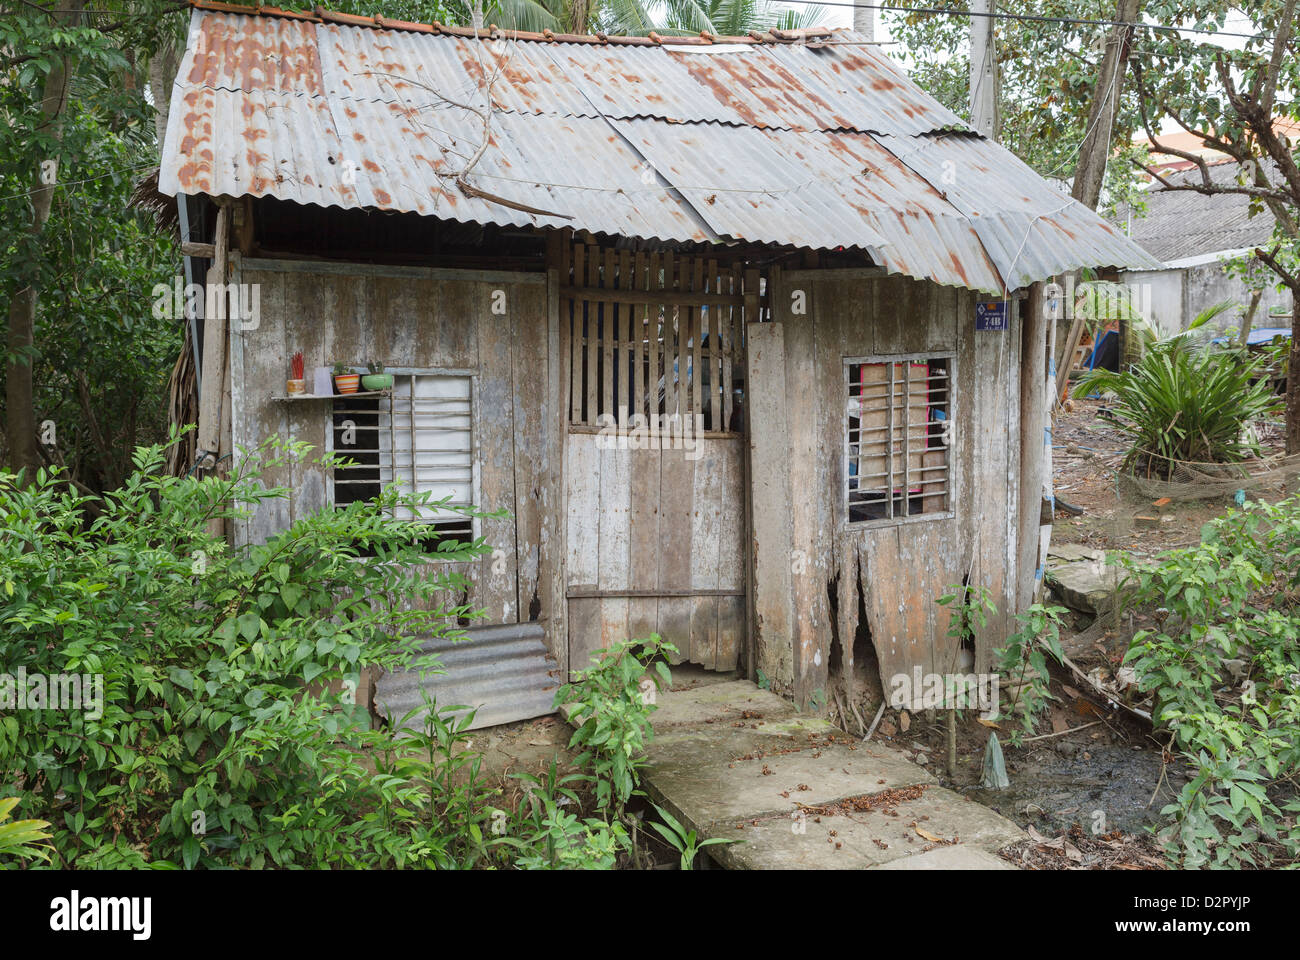 A common agricultural worker's shack, Ben Ke, Vietnam, Indochina, Southeast Asia, Asia - Stock Image